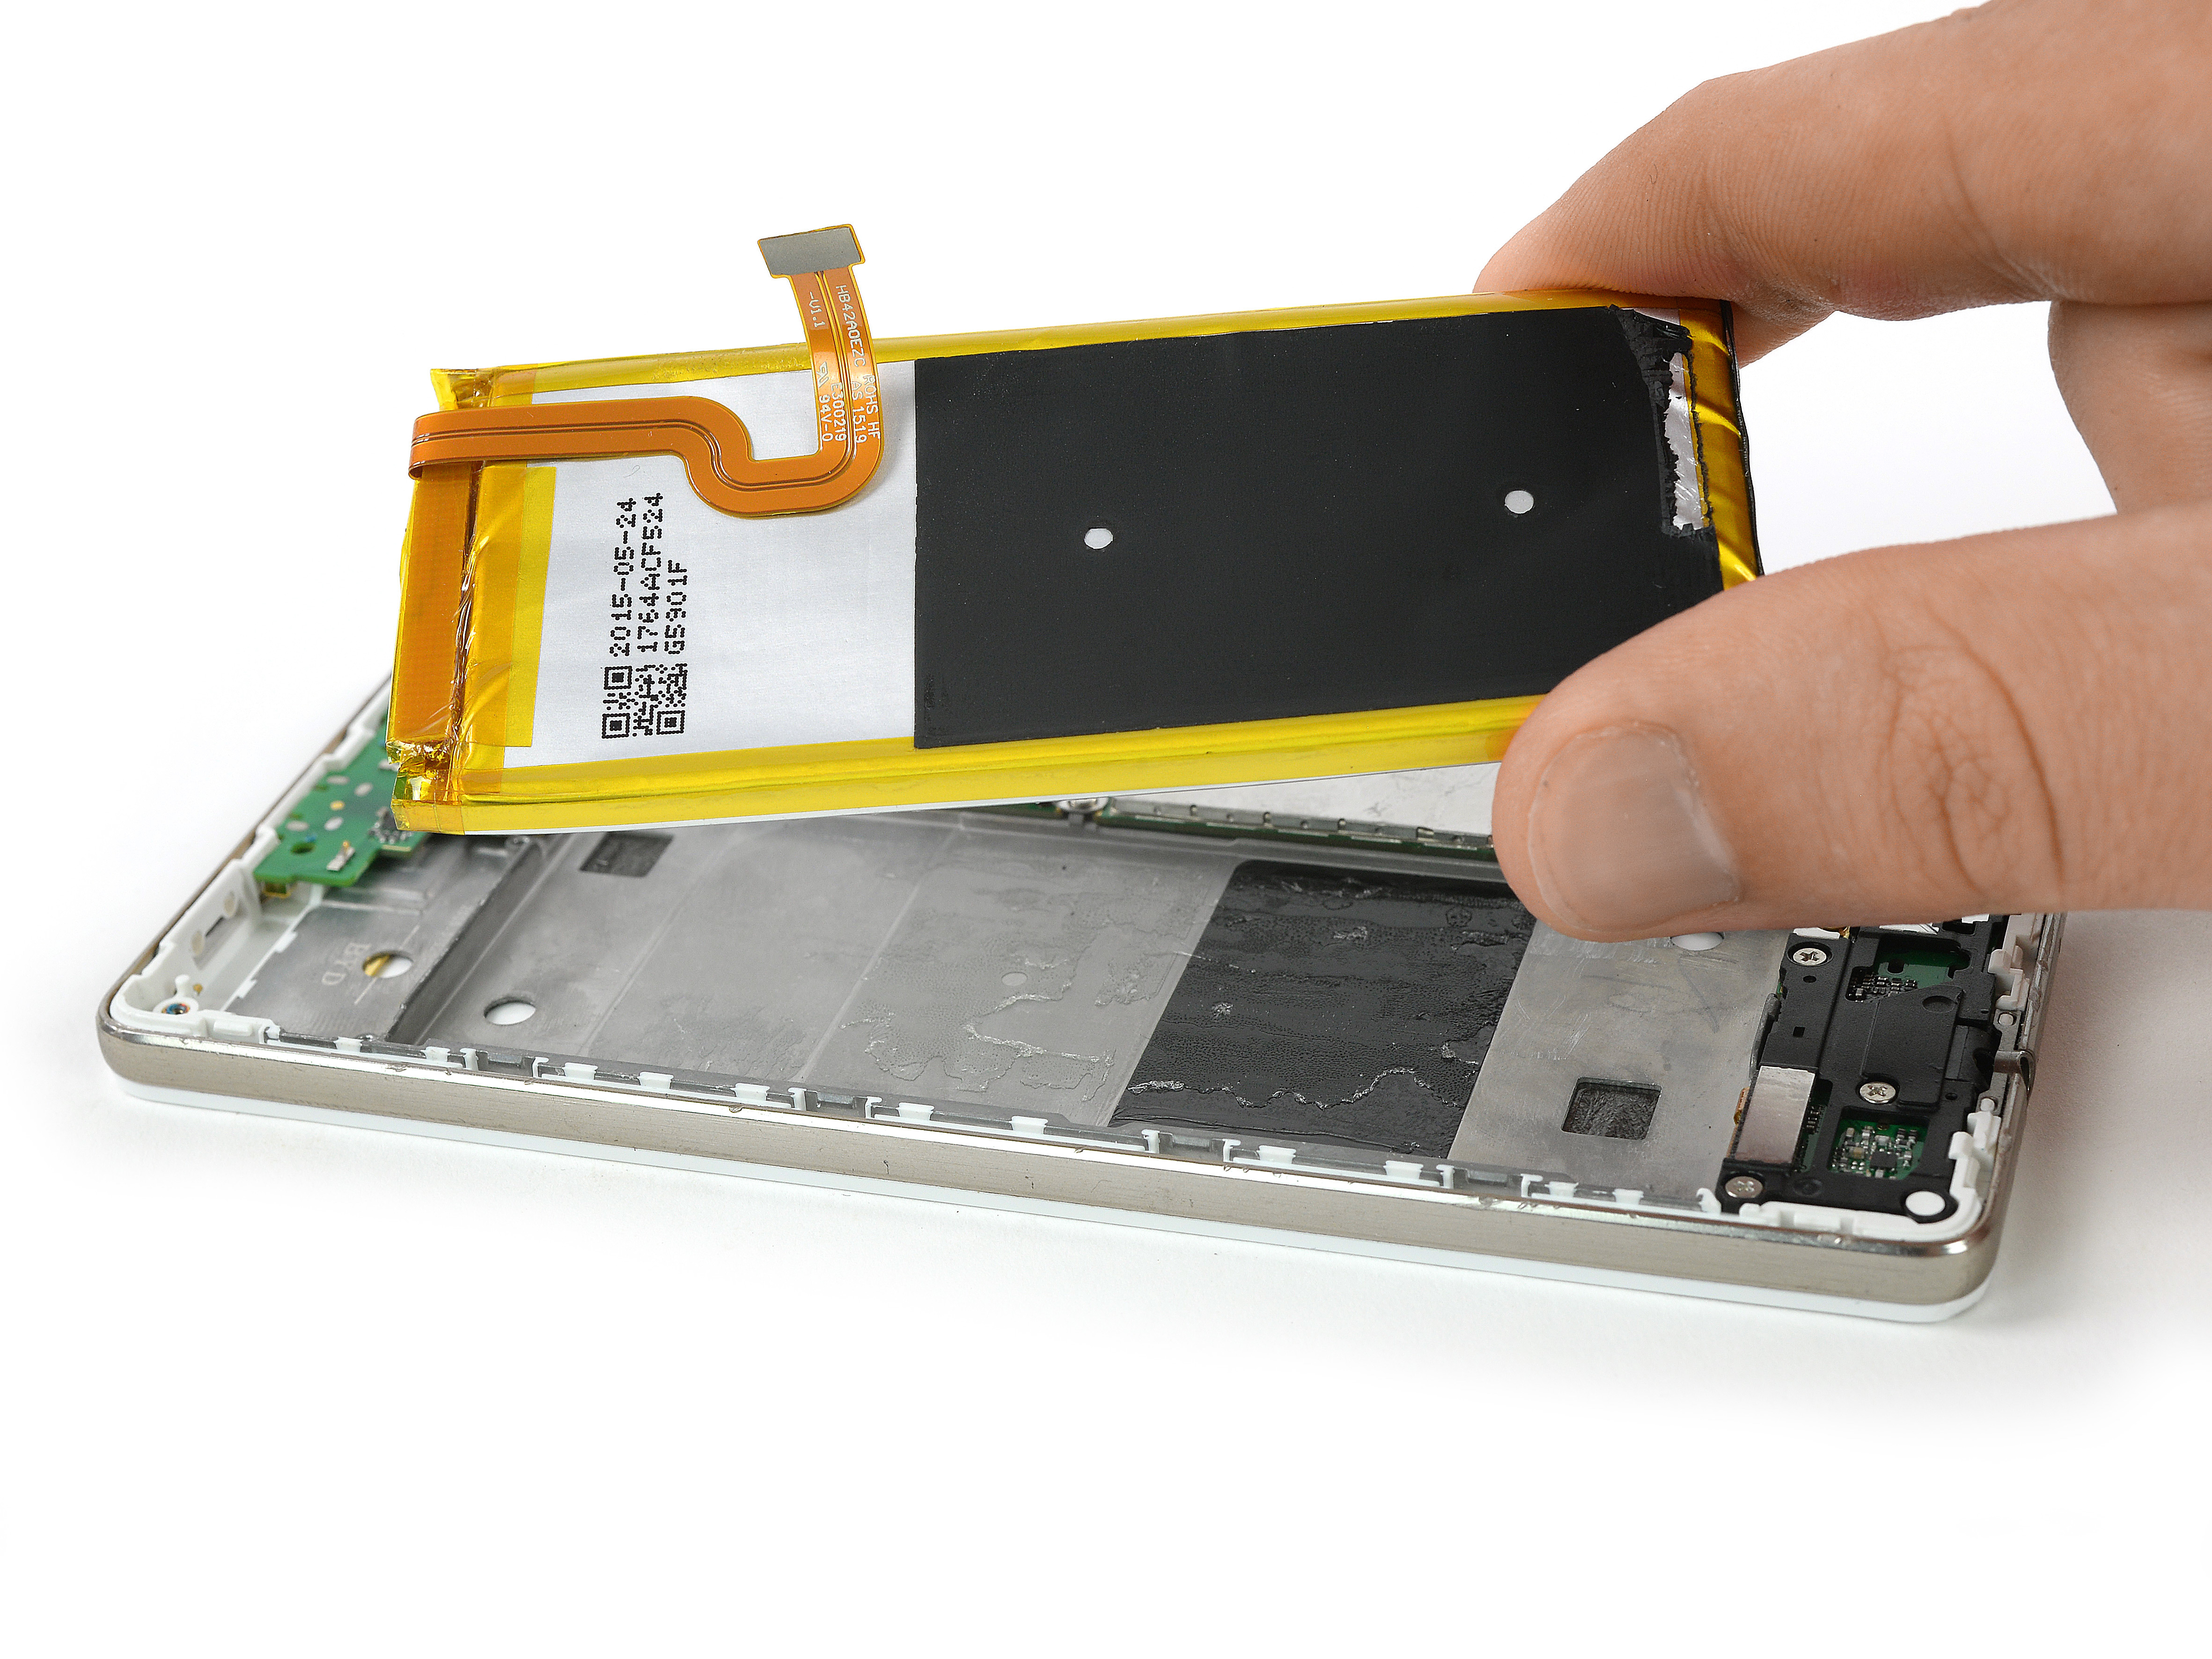 huawei p8 lite battery replacement ifixit repair guide. Black Bedroom Furniture Sets. Home Design Ideas